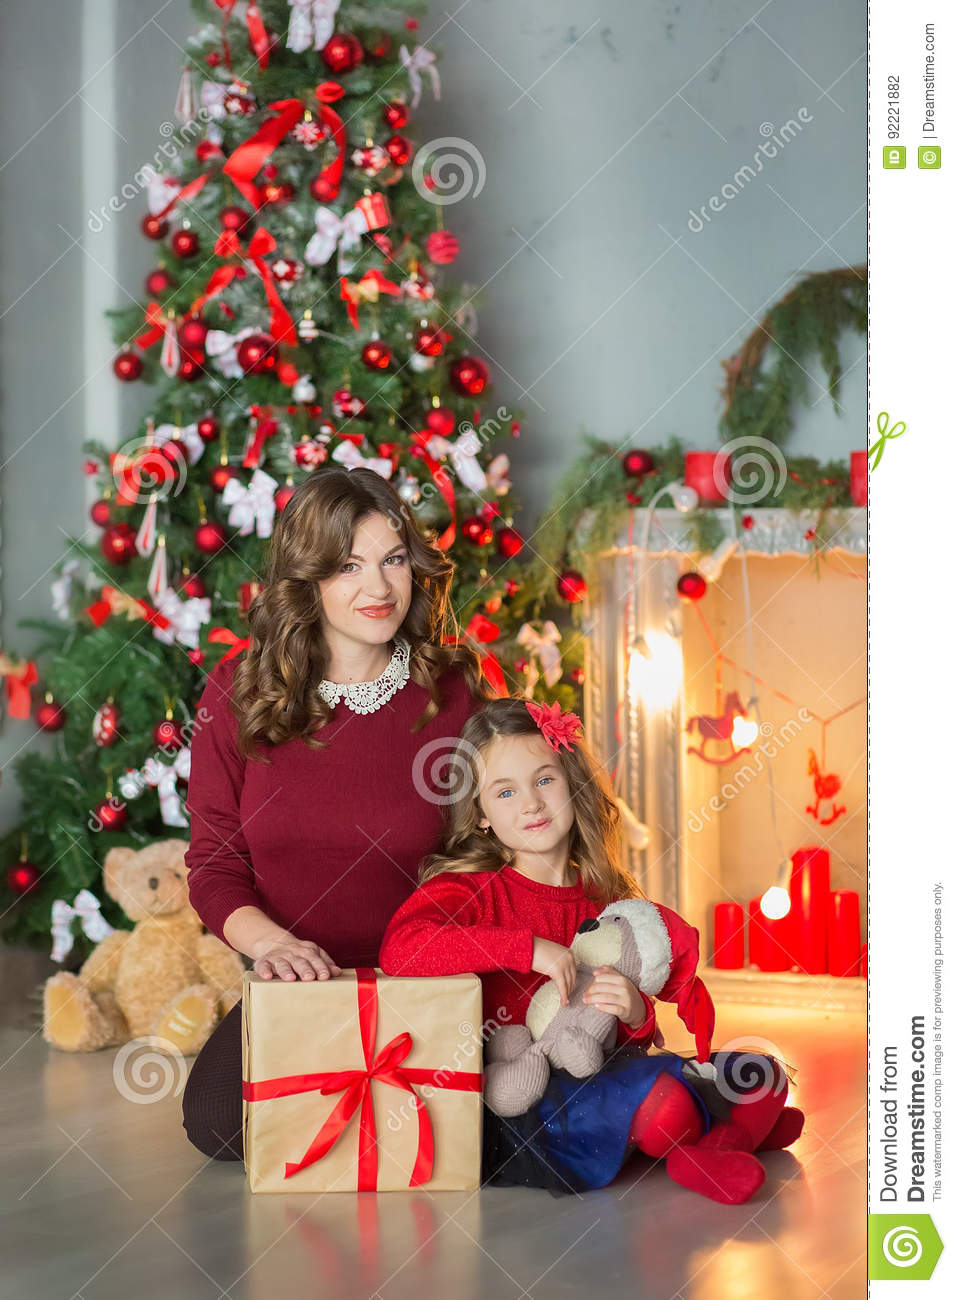 Family on Christmas eve at fireplace. Kids opening Xmas presents. Children under Christmas tree with gift boxes. Decorated living